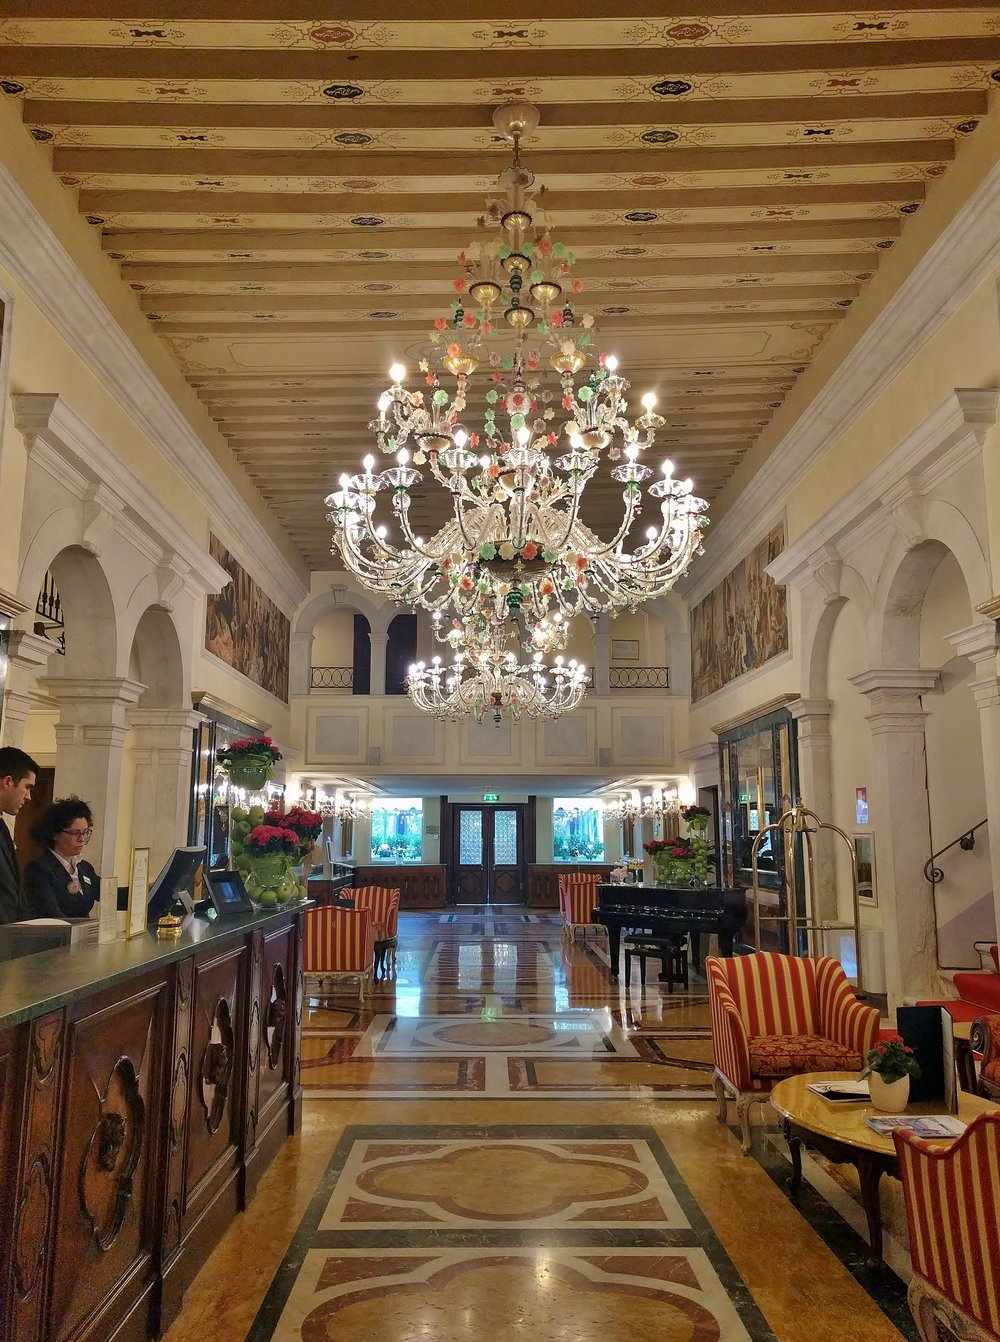 Lobby of the Boscolo Venezia in Venice